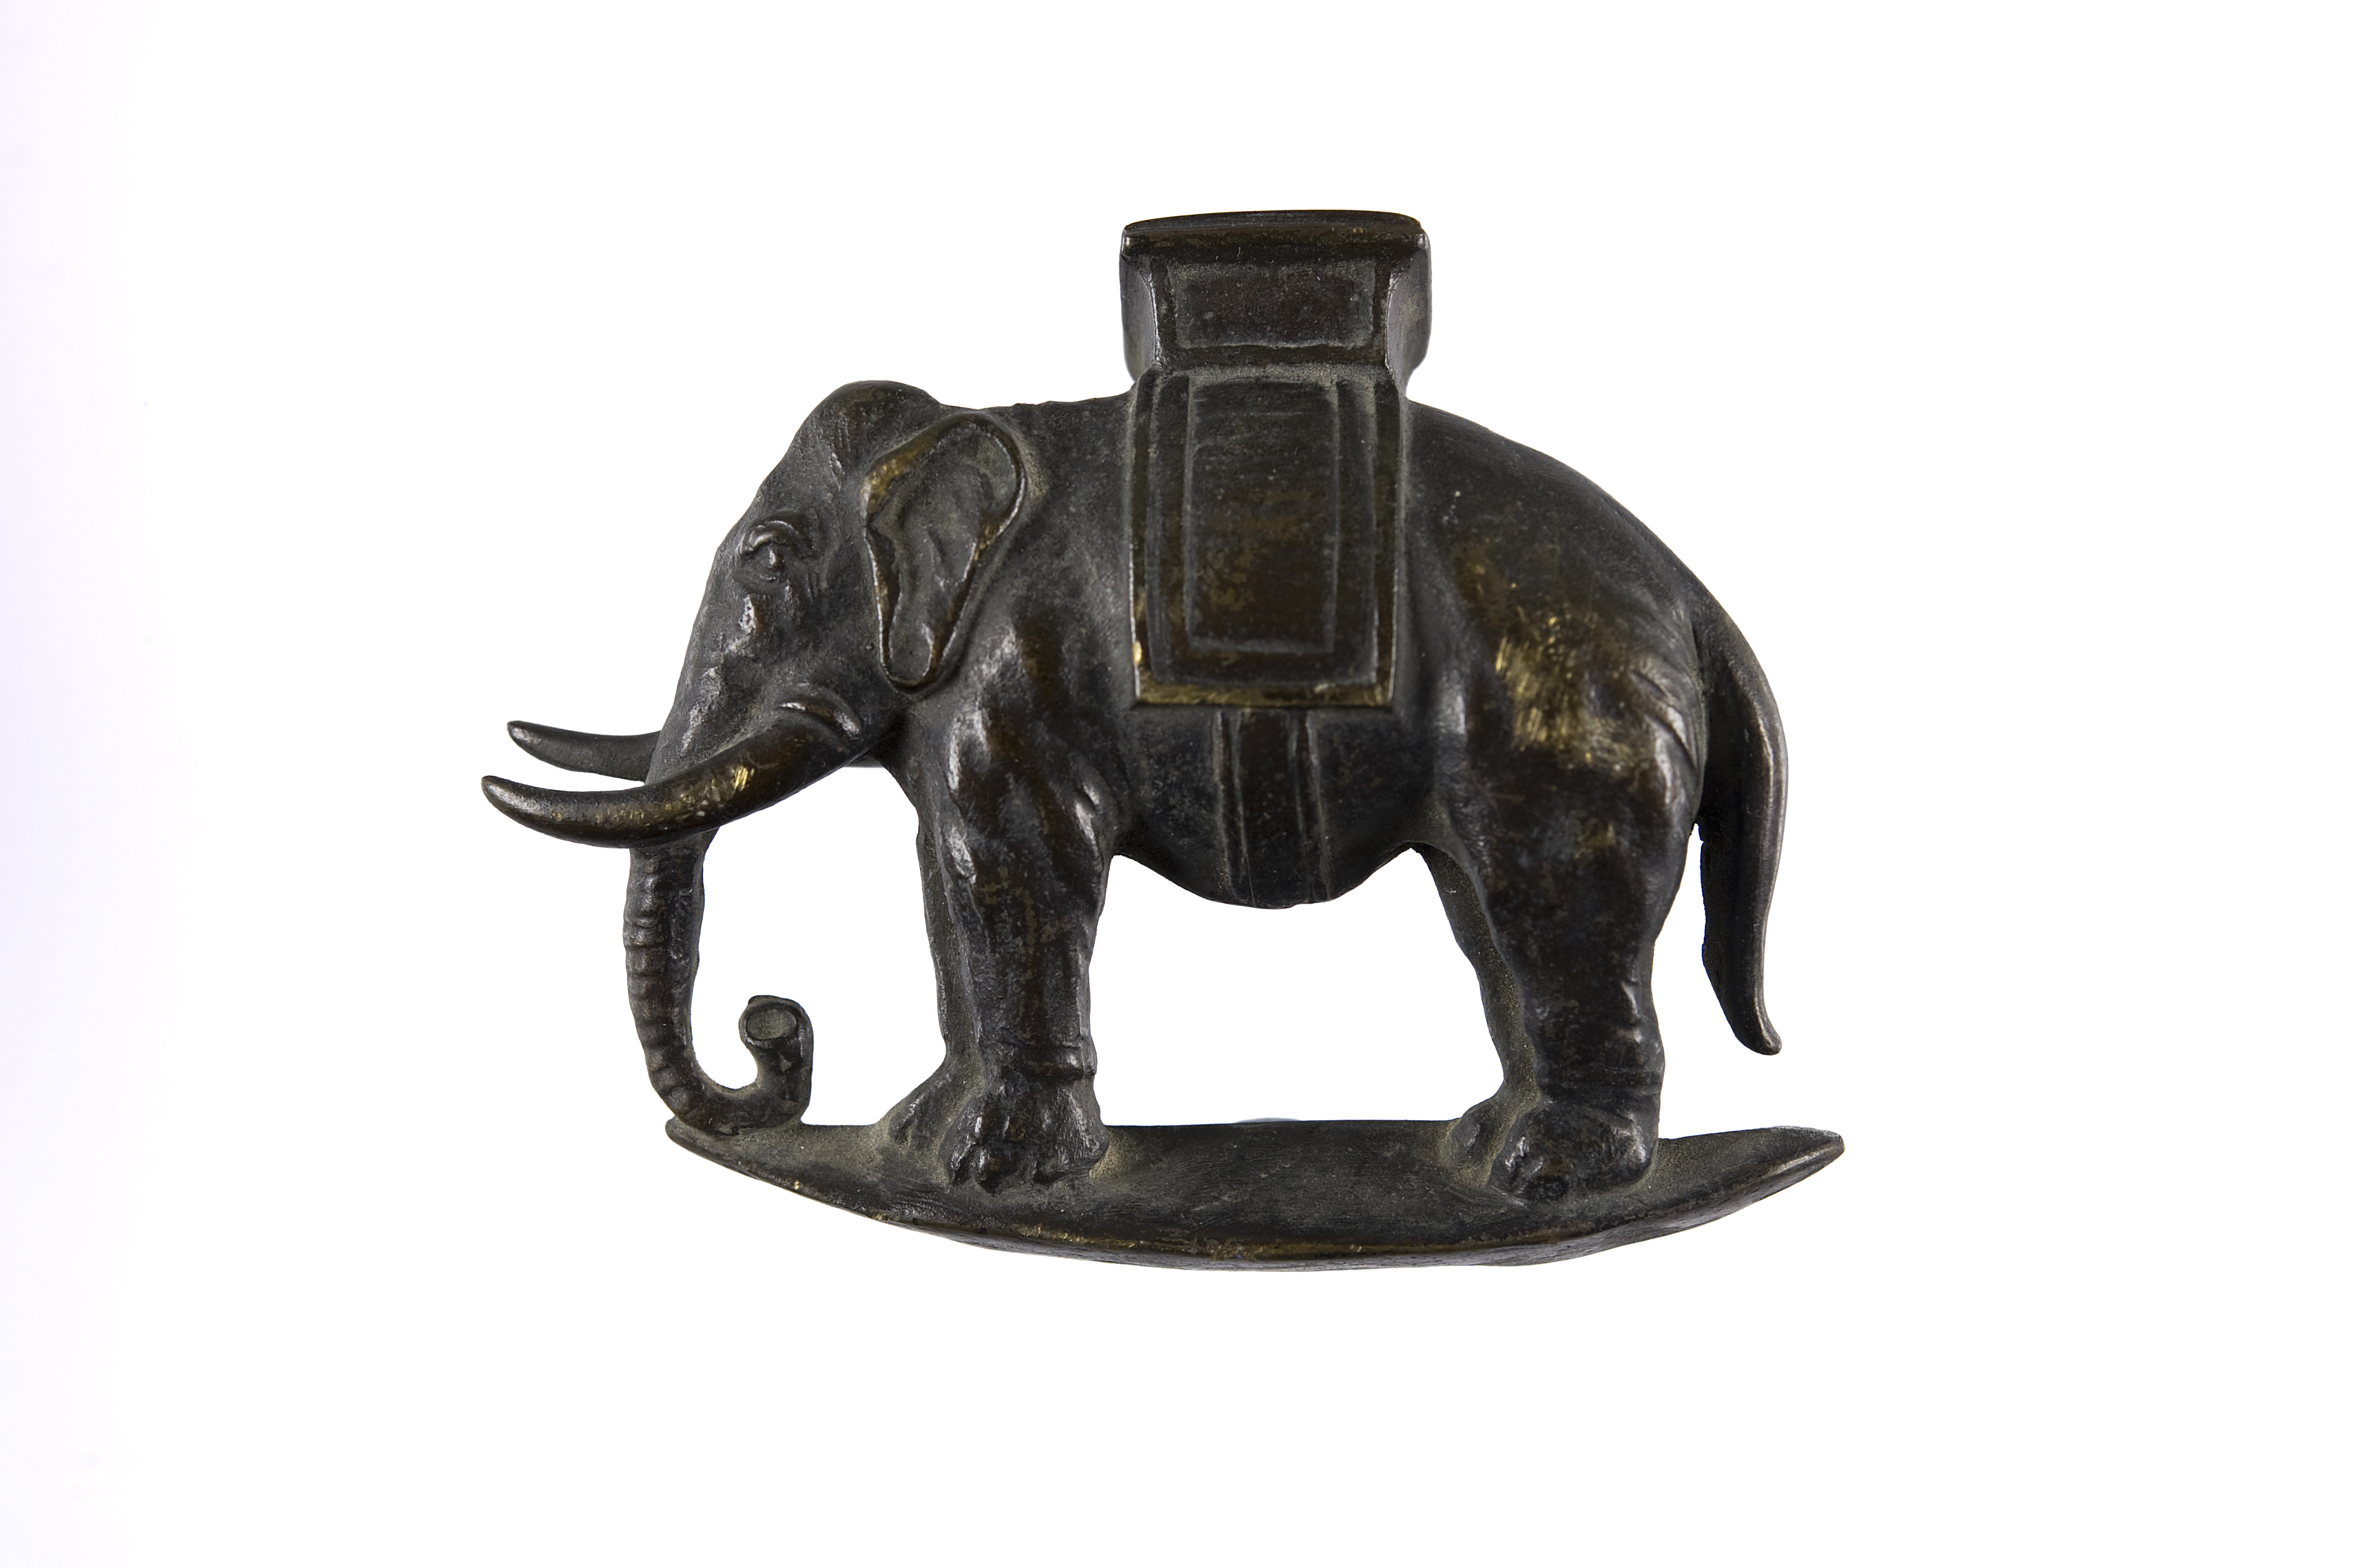 Brass elephant from the memorial stone to 2nd Lt. Braham Alfred Franks who was killed in Gallipoli 23/10/15 at Sulva Bay aged 22. ©Jewish Museum London/Jewish Military Museum